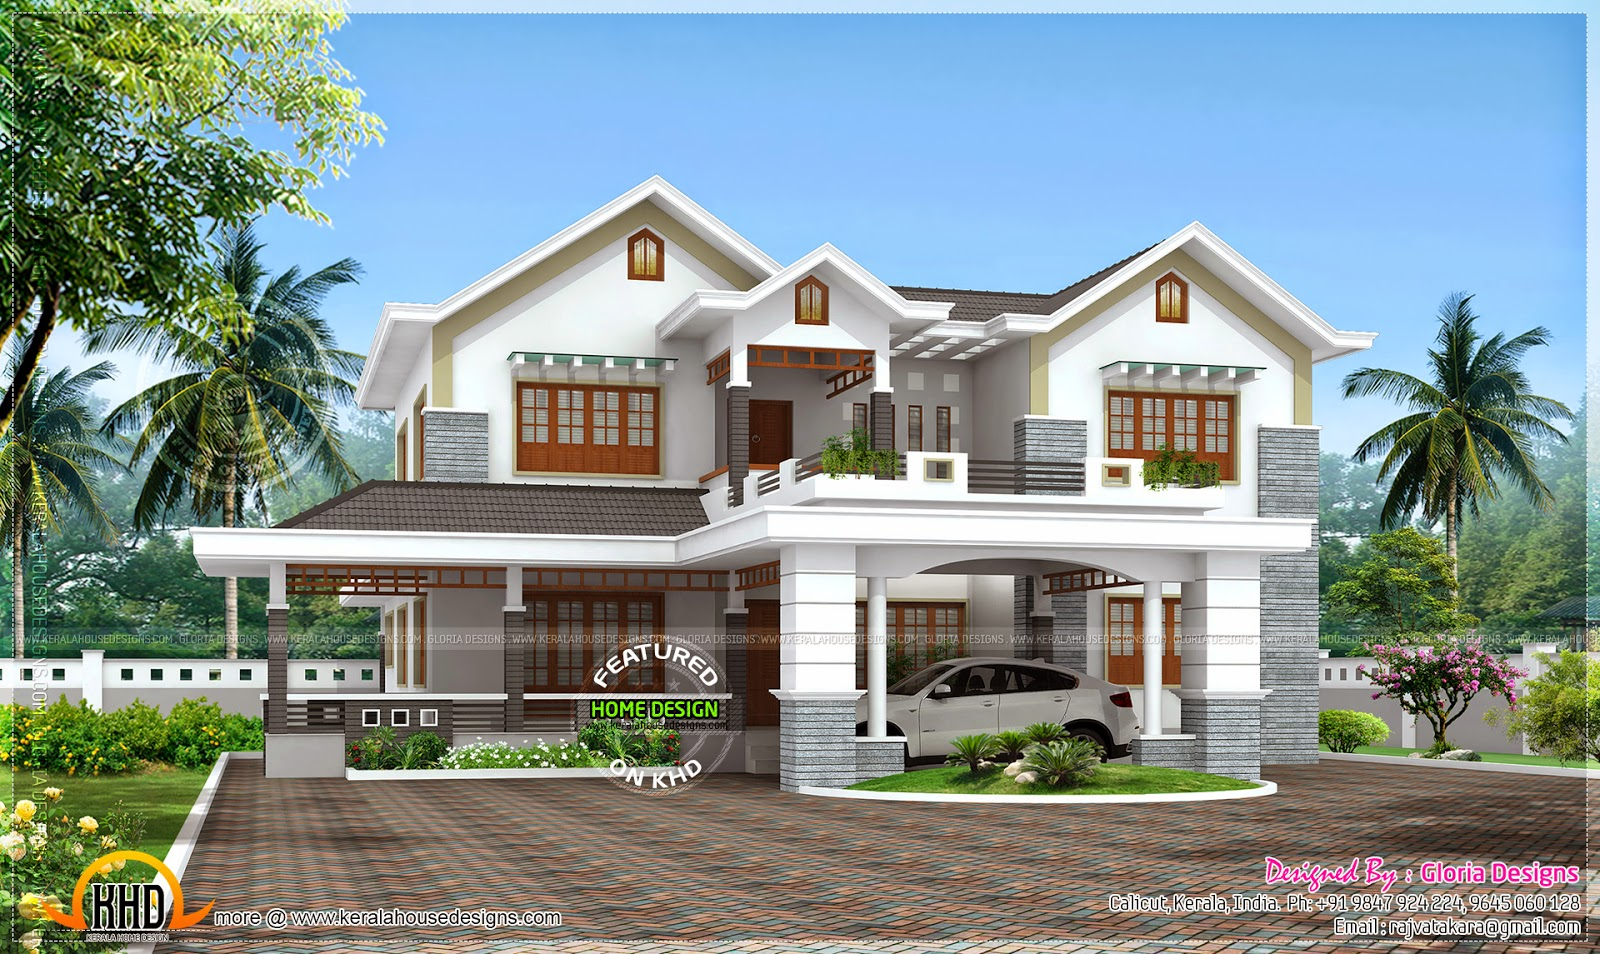 Beautiful 4 bedroom modern house kerala home design and for Beautiful farmhouse plans